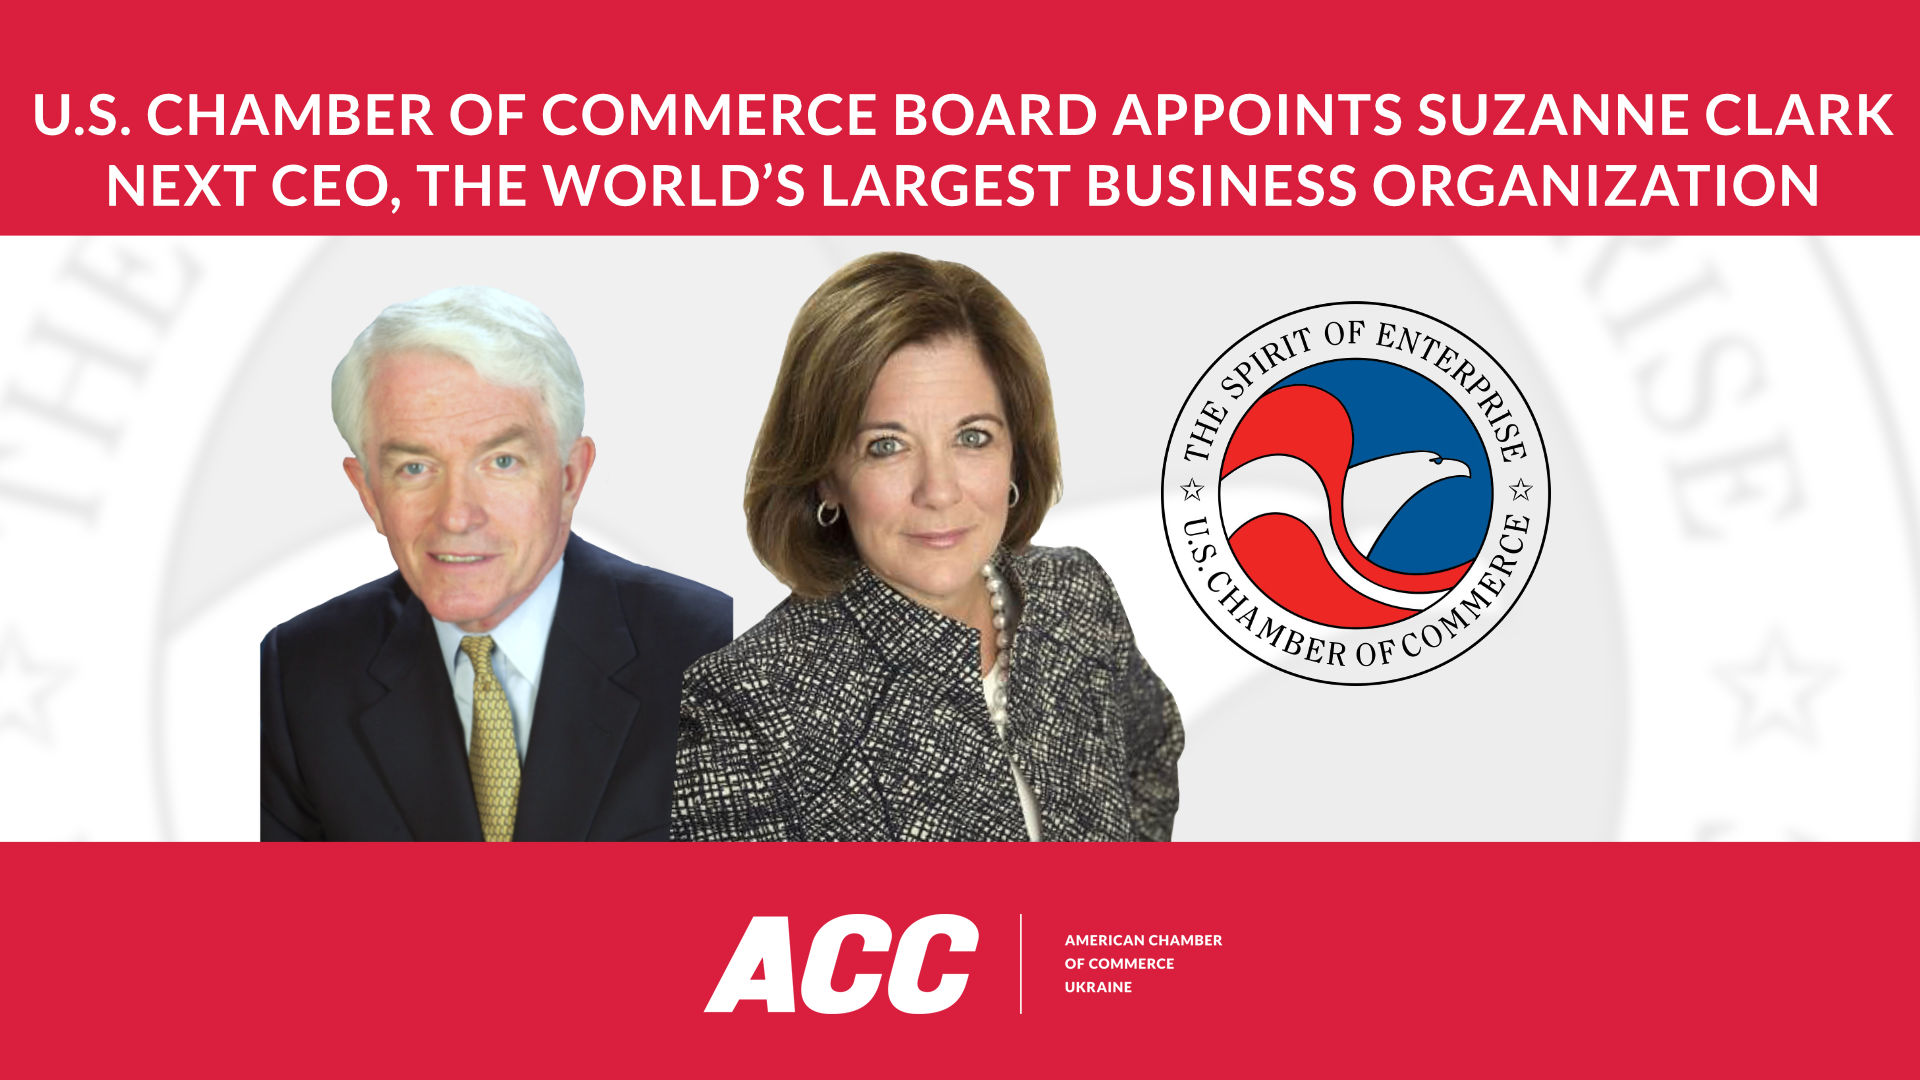 U.S. Chamber of Commerce Board of Directors' Executive Committee Appoints Suzanne Clark Next CEO